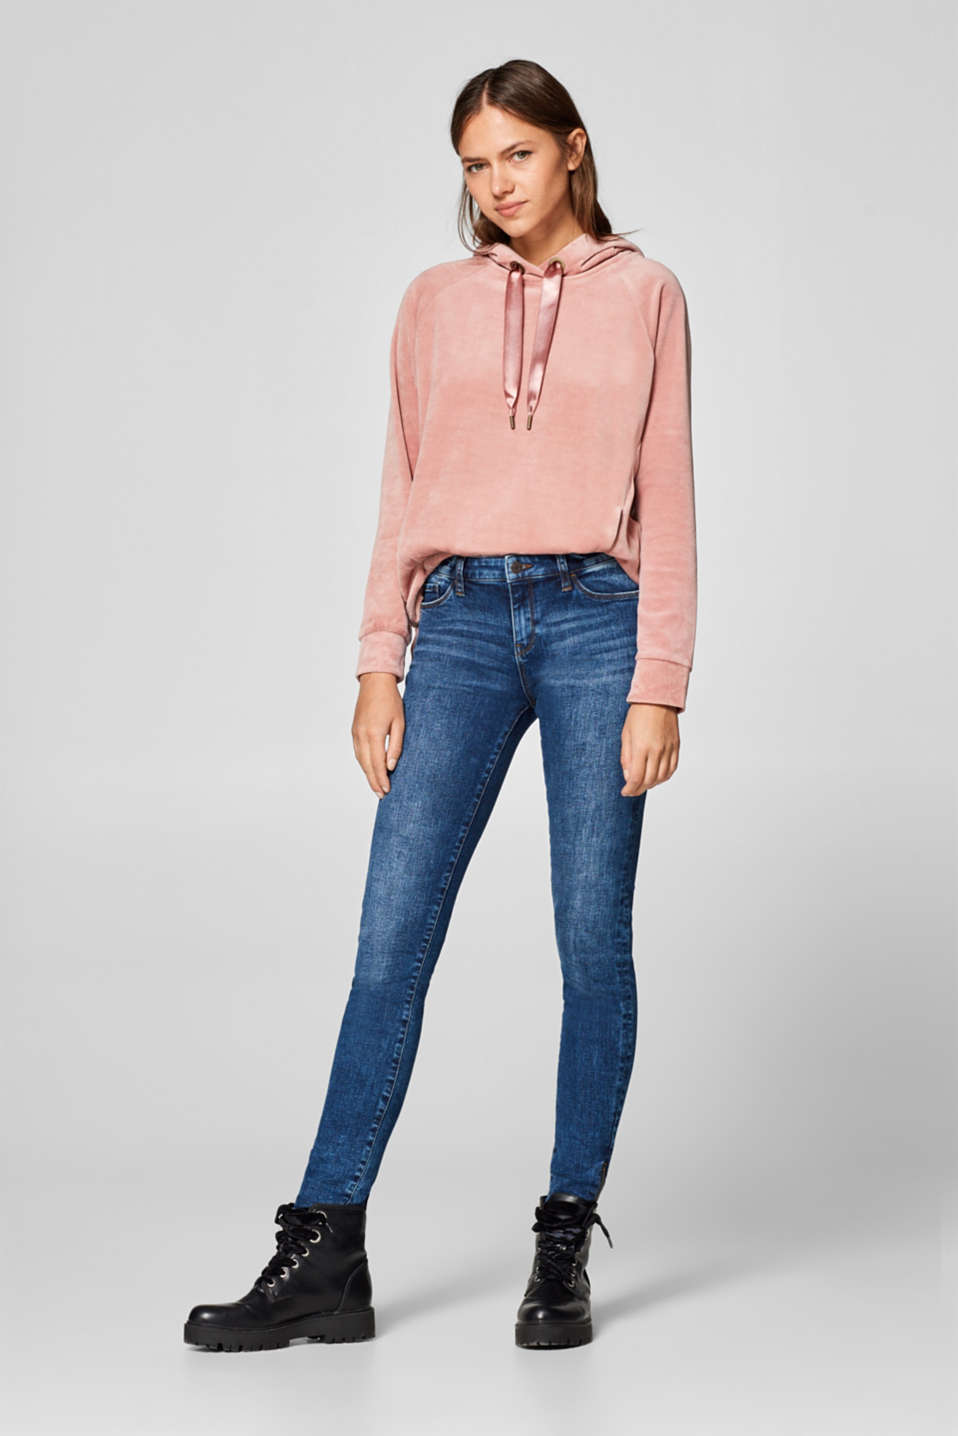 Esprit - Stretch jeans with side hem zips